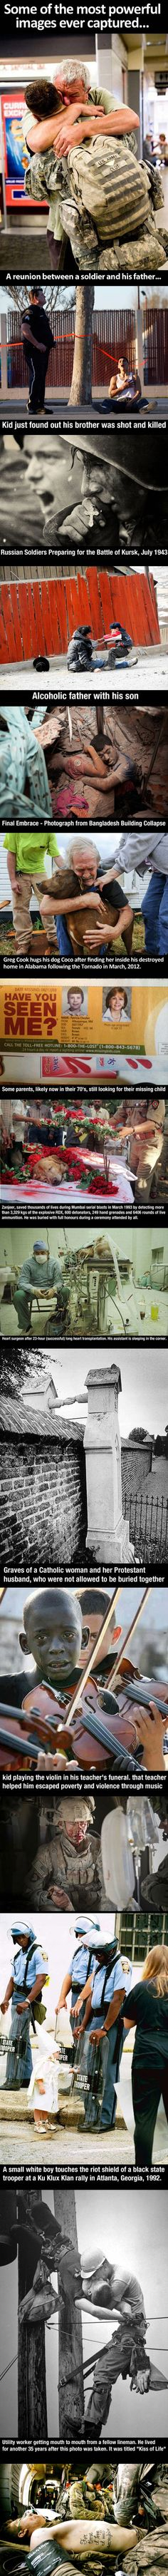 15 Powerful Photographs... Wow